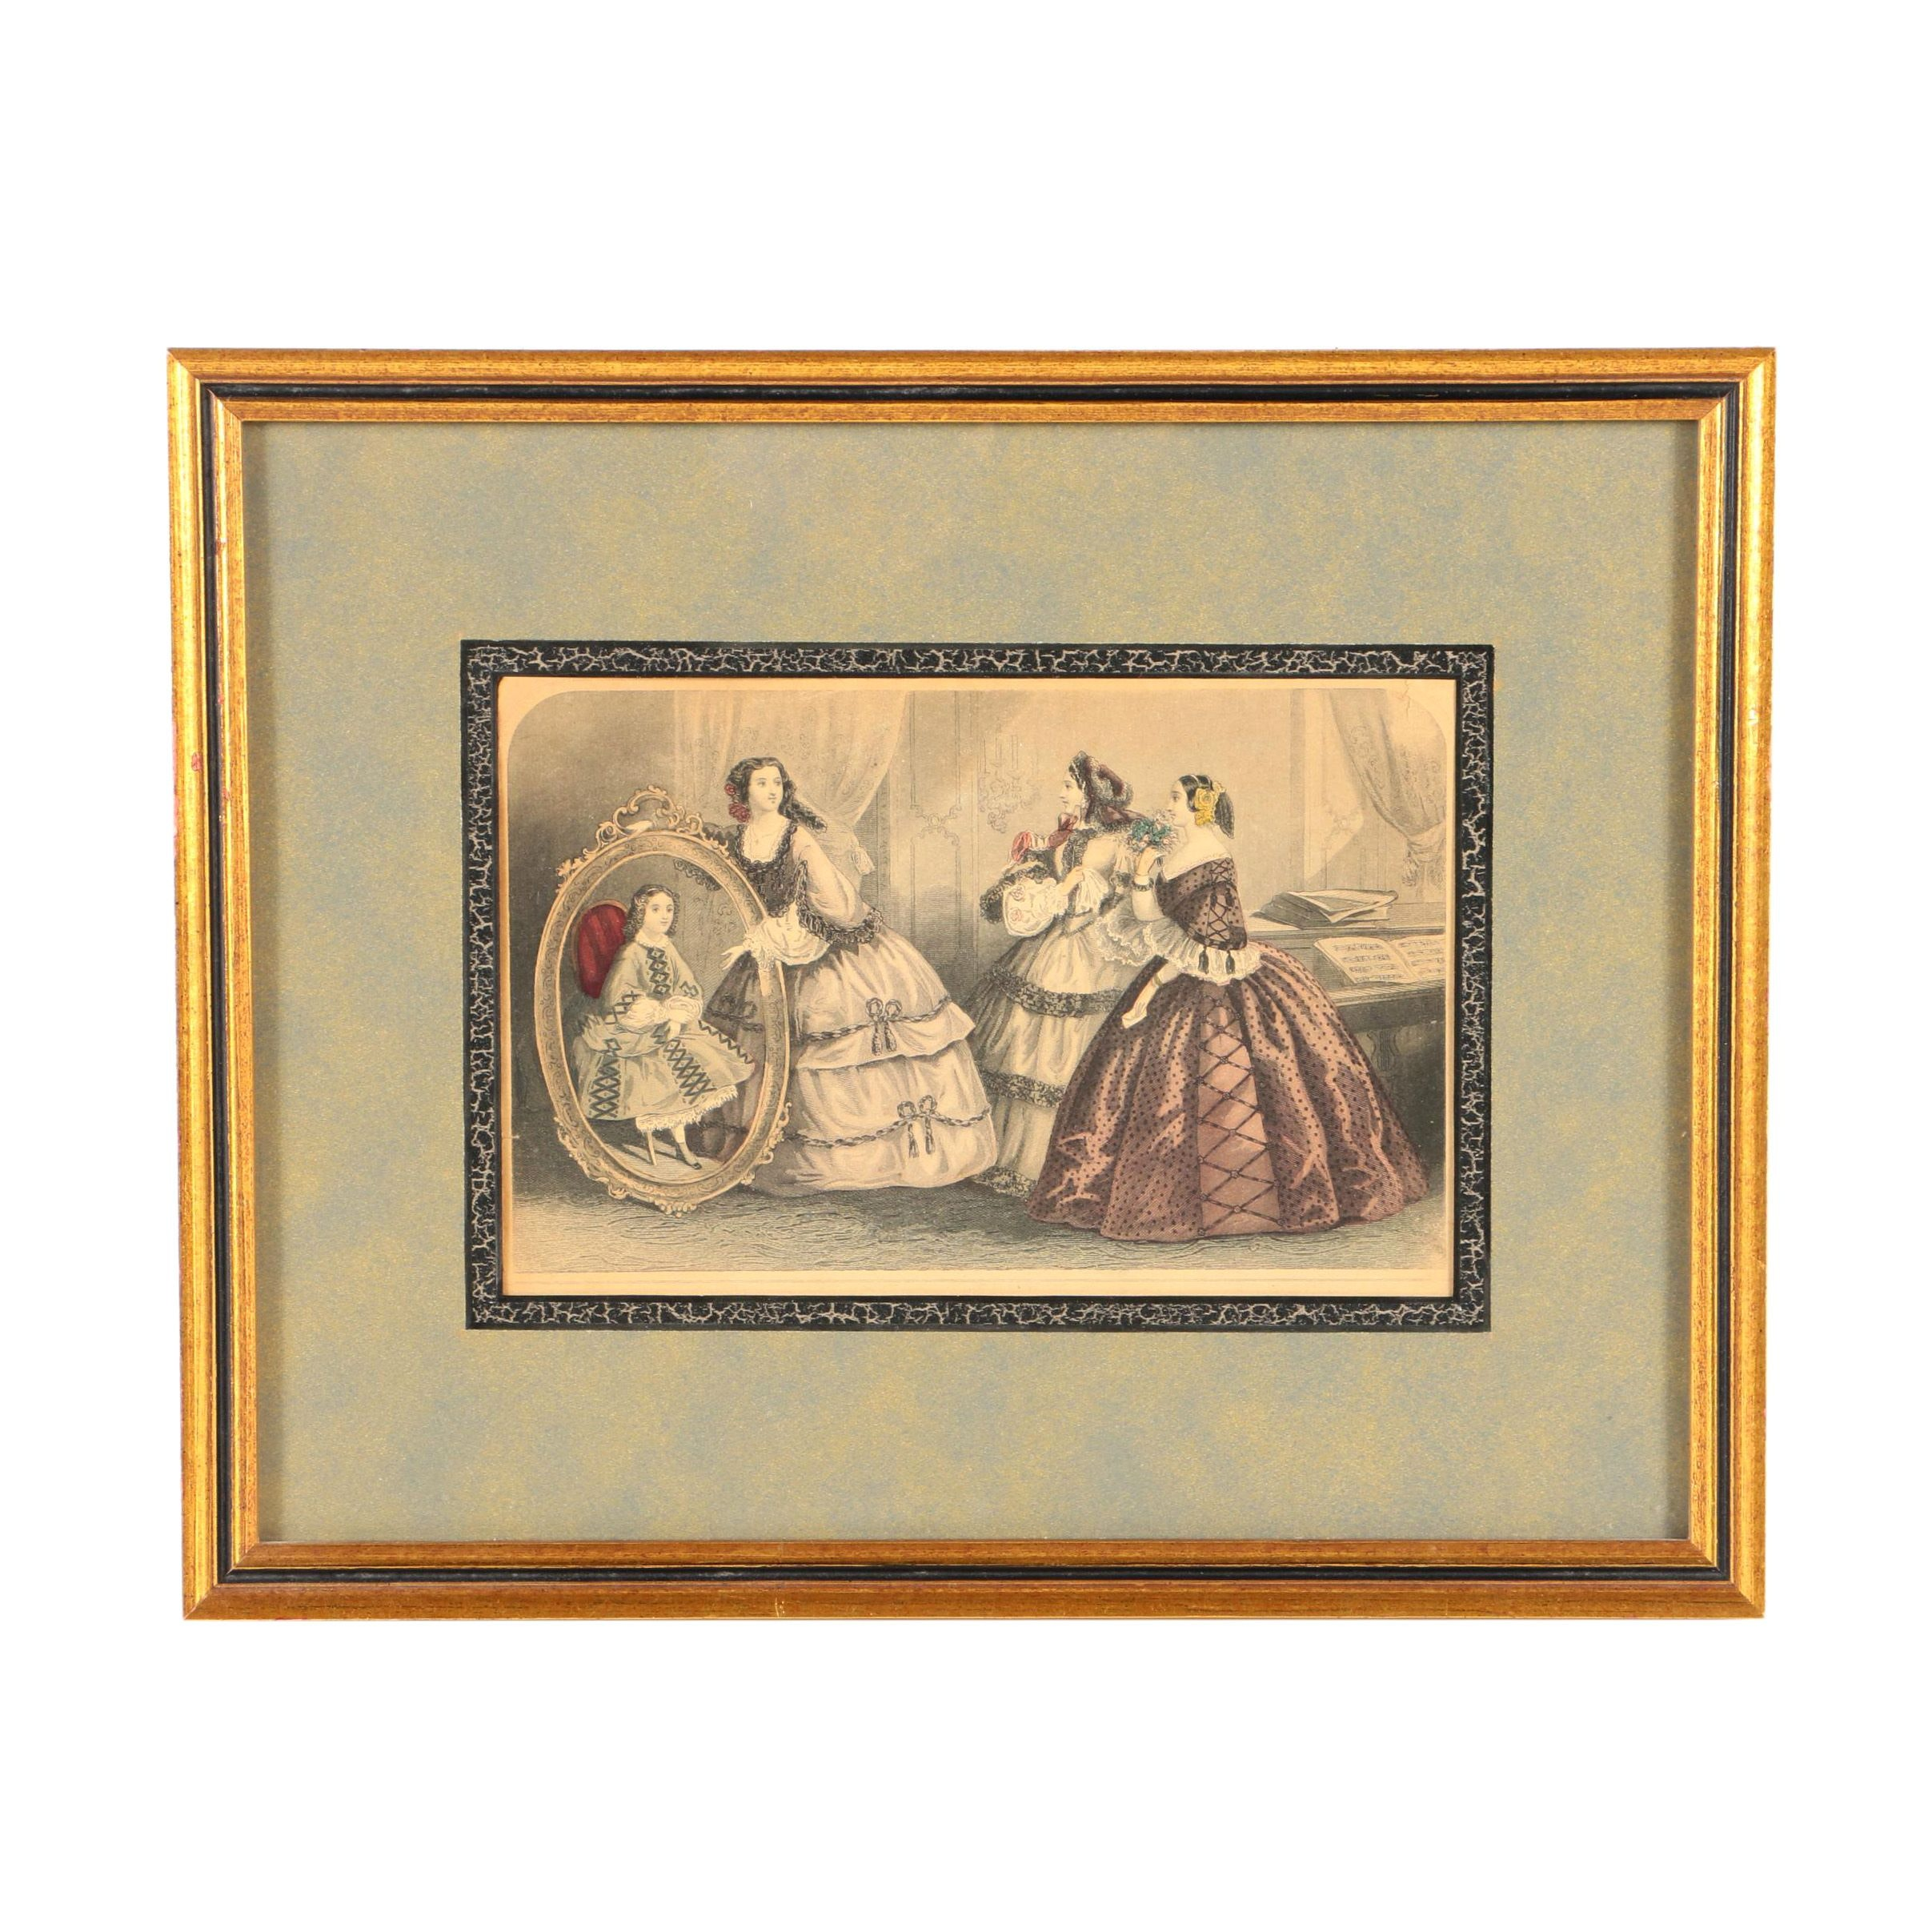 Hand-Colored Engraving on Paper Fashion Plate from Godey's Lady's Book